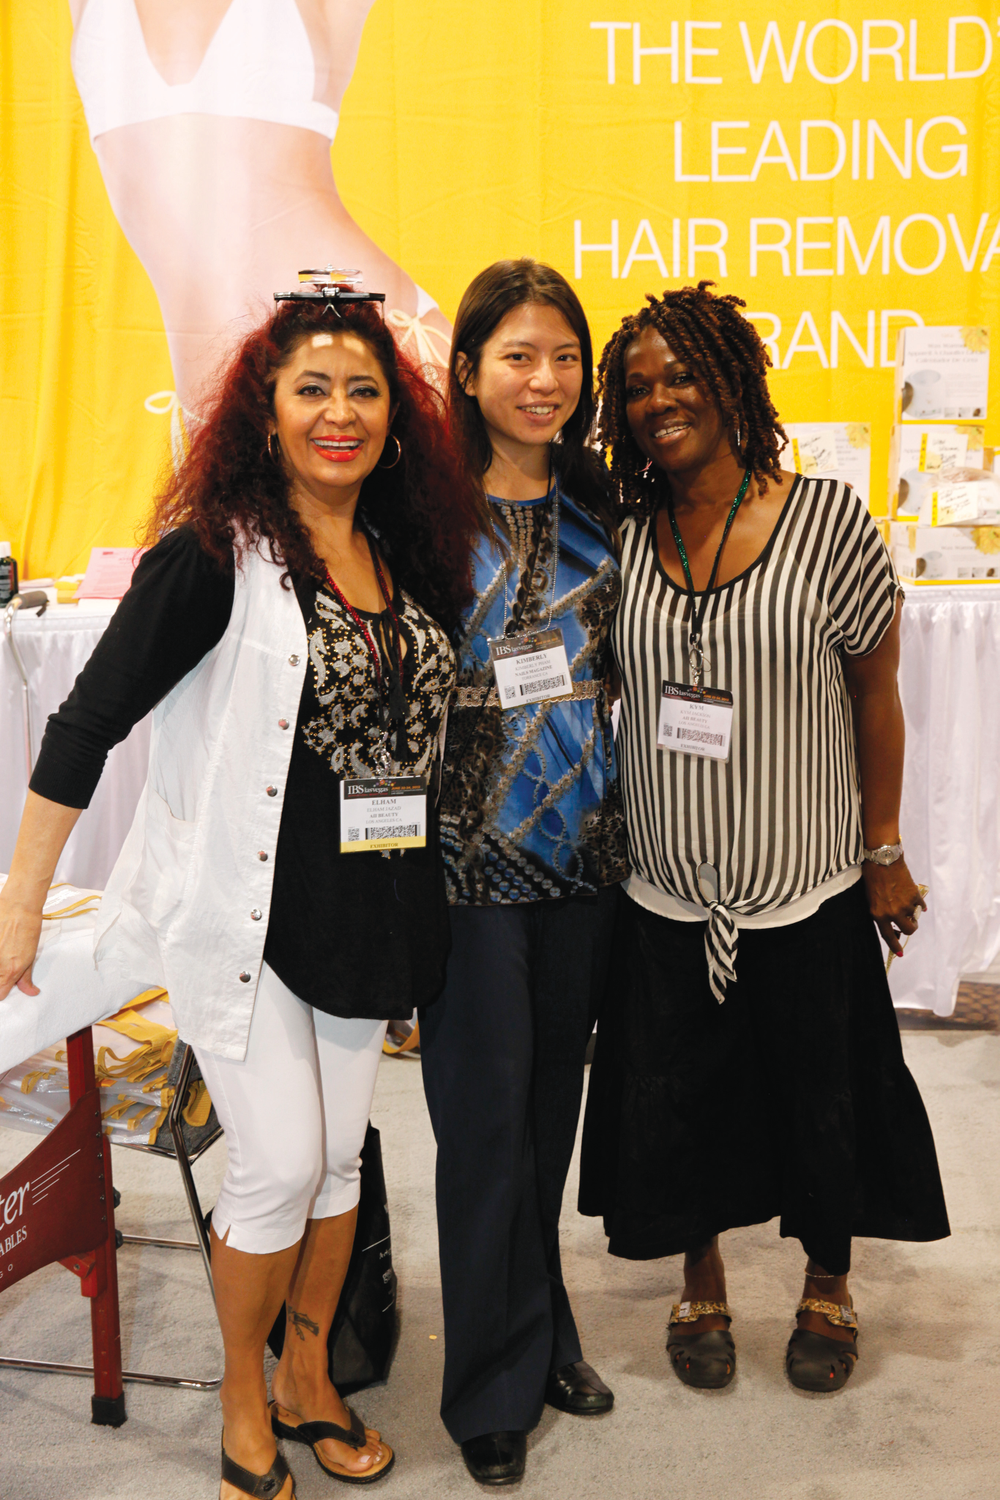 <p>VietSALON associate editor Kim Pham (center) is flanked by Kym Jackson (right) and Elham Jazab (left), who demonstrated Gigi Brazilian Body Wax on Pham&rsquo;s eyebrows.</p>